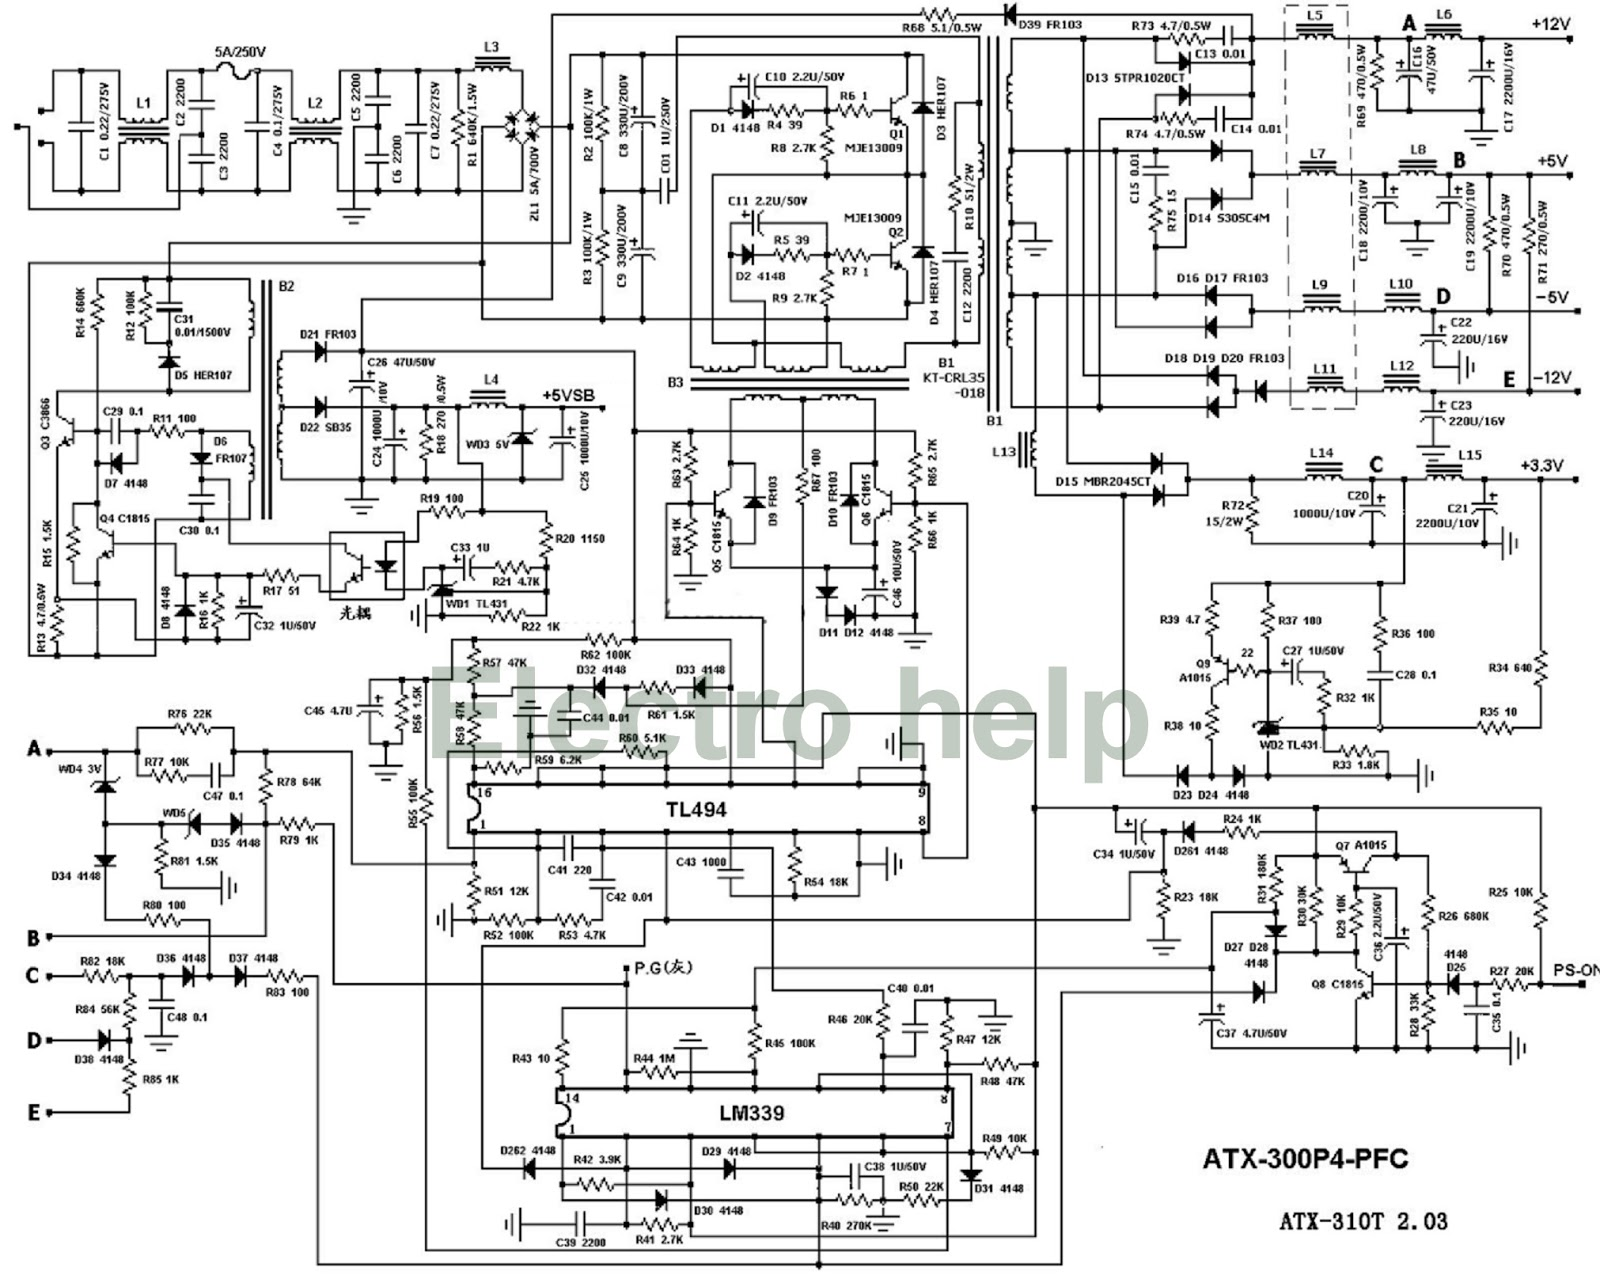 ATX power supply - Desktop computers - ATX300P4 - schematic MJE13009 ...